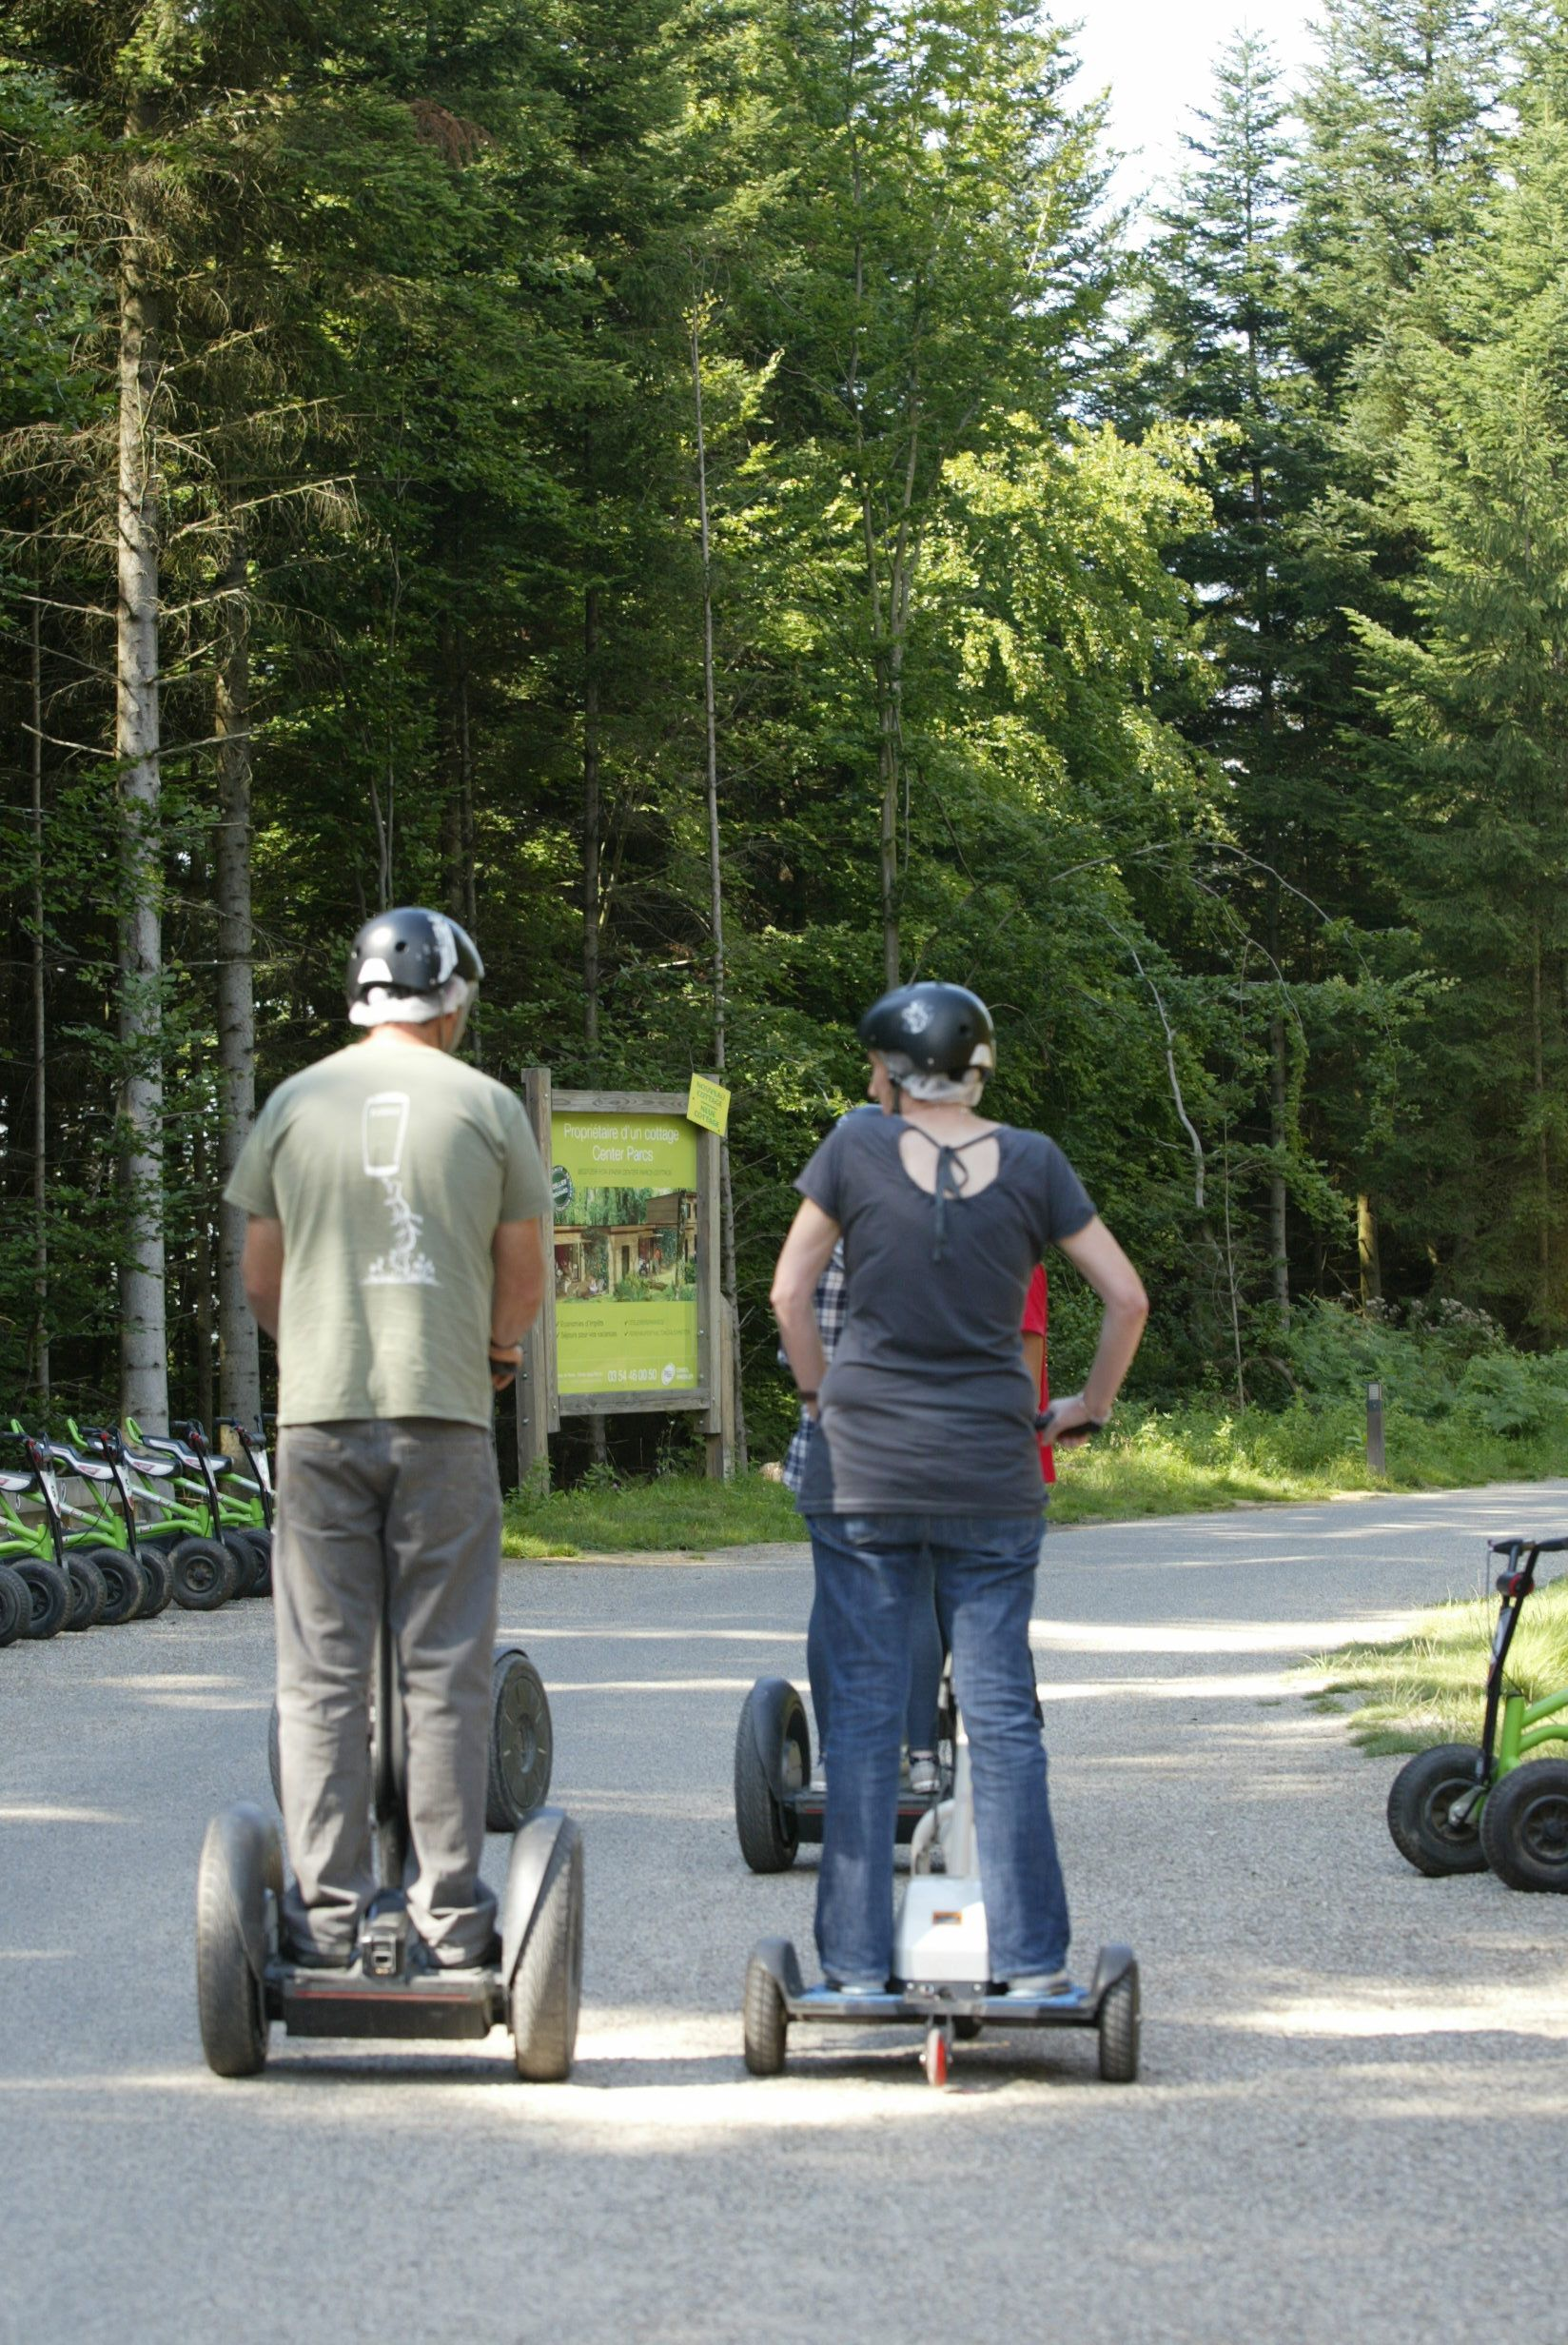 Riding segway in the forest at Center Parcs #Moselle #Lorraine - #enjoymoselle More to discover on http://www.moselle-tourism.com/en/things-to-do/walking-and-outdoor-activities.html